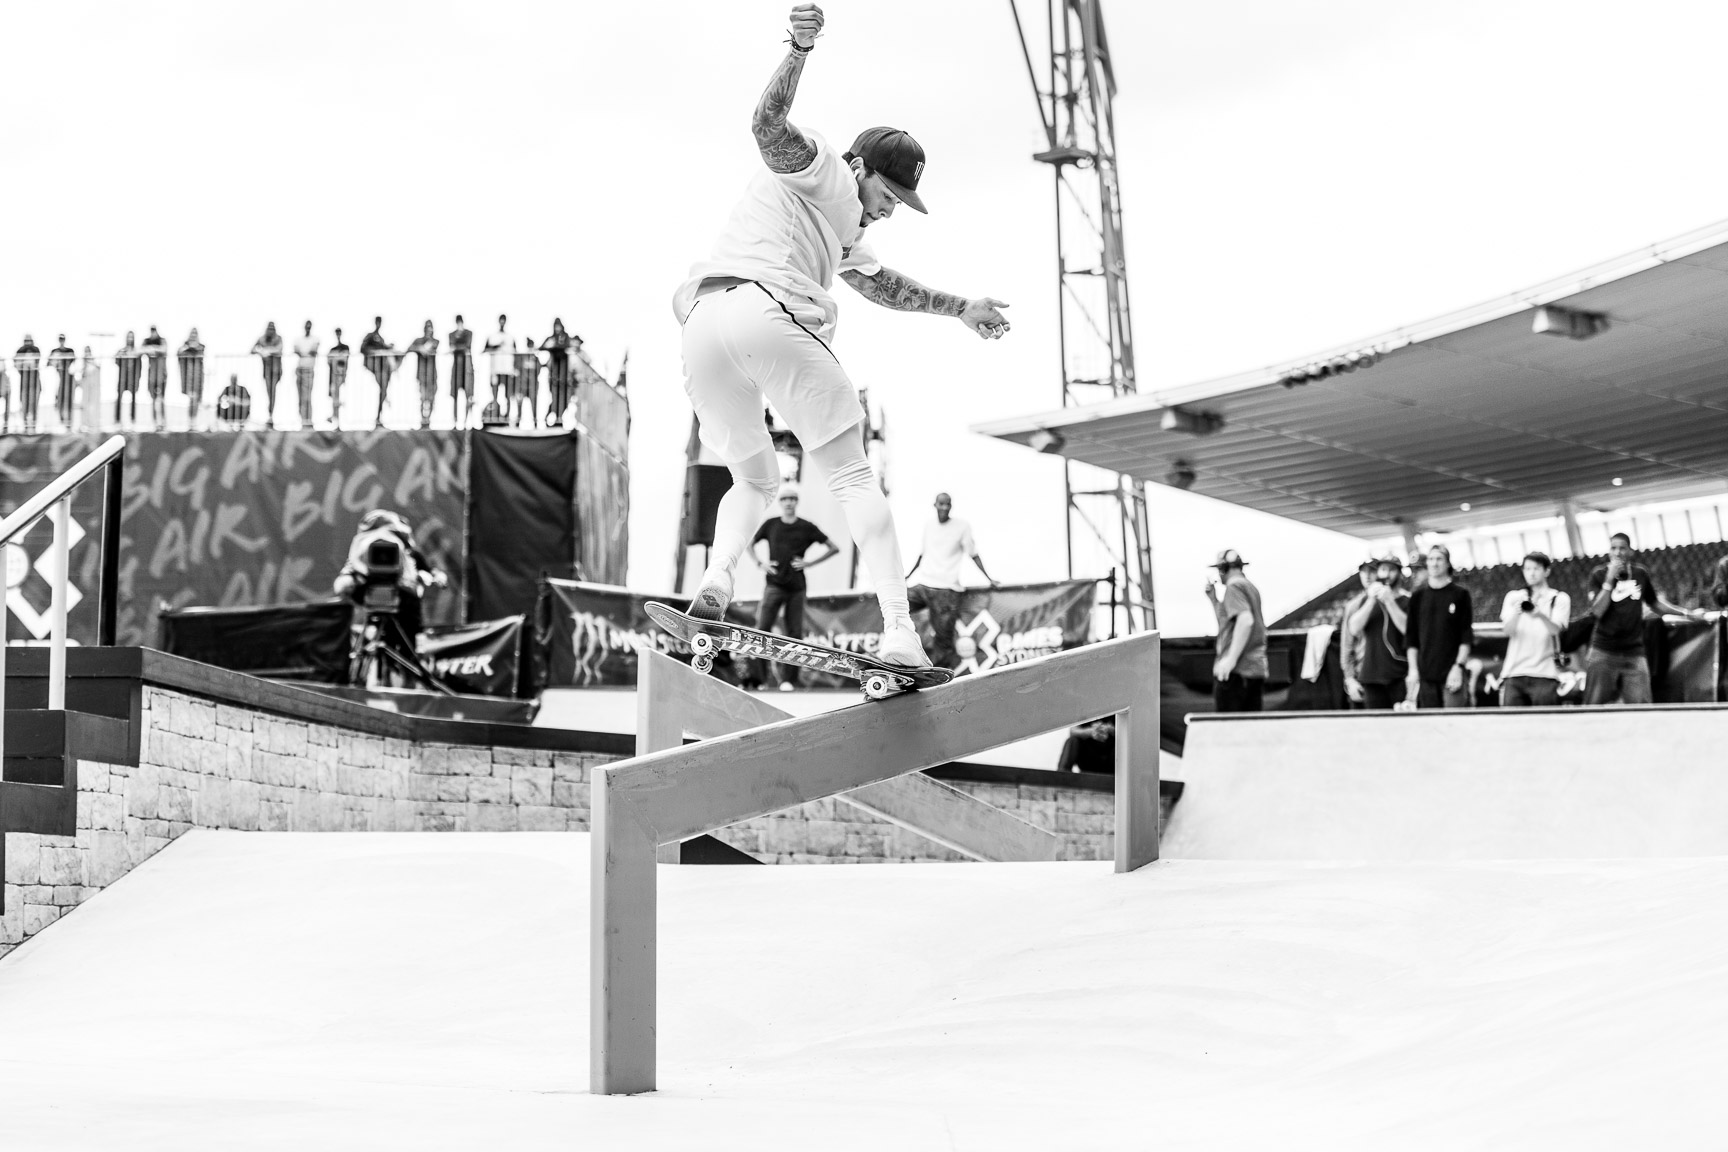 Although the masses will argue about Nyjah Huston's decision to wear compression pants in the Men's Skateboard Street finals, no one can argue with his inherent skate talent. At X Games Sydney, Huston delivered two of the most technically progressive and groundbreaking runs in skate history. Chalk up another gold medal for Huston, and watch for a compression pant trend to emerge in skate.